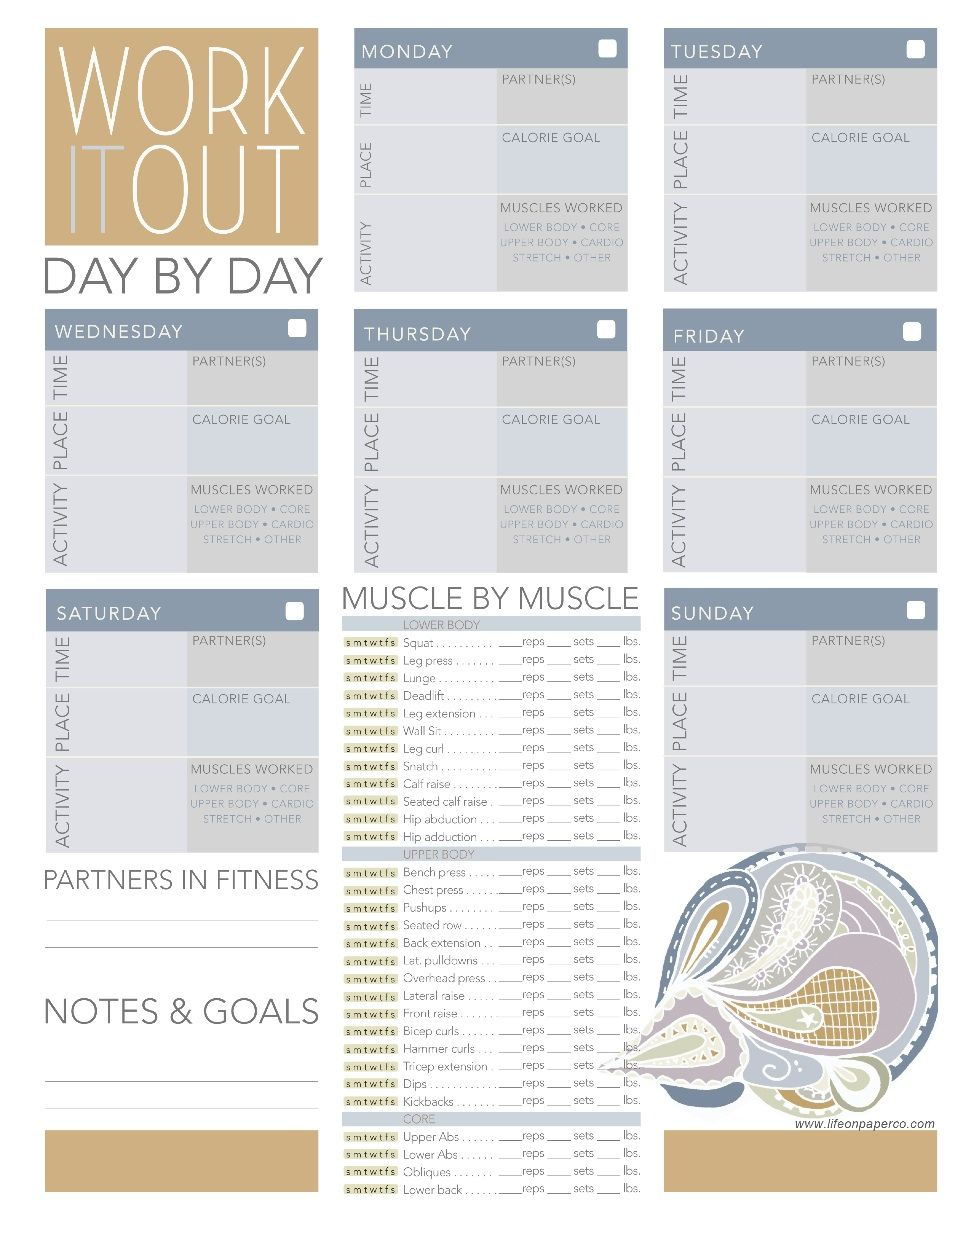 this table is a good way to keep track of all of your exercises and